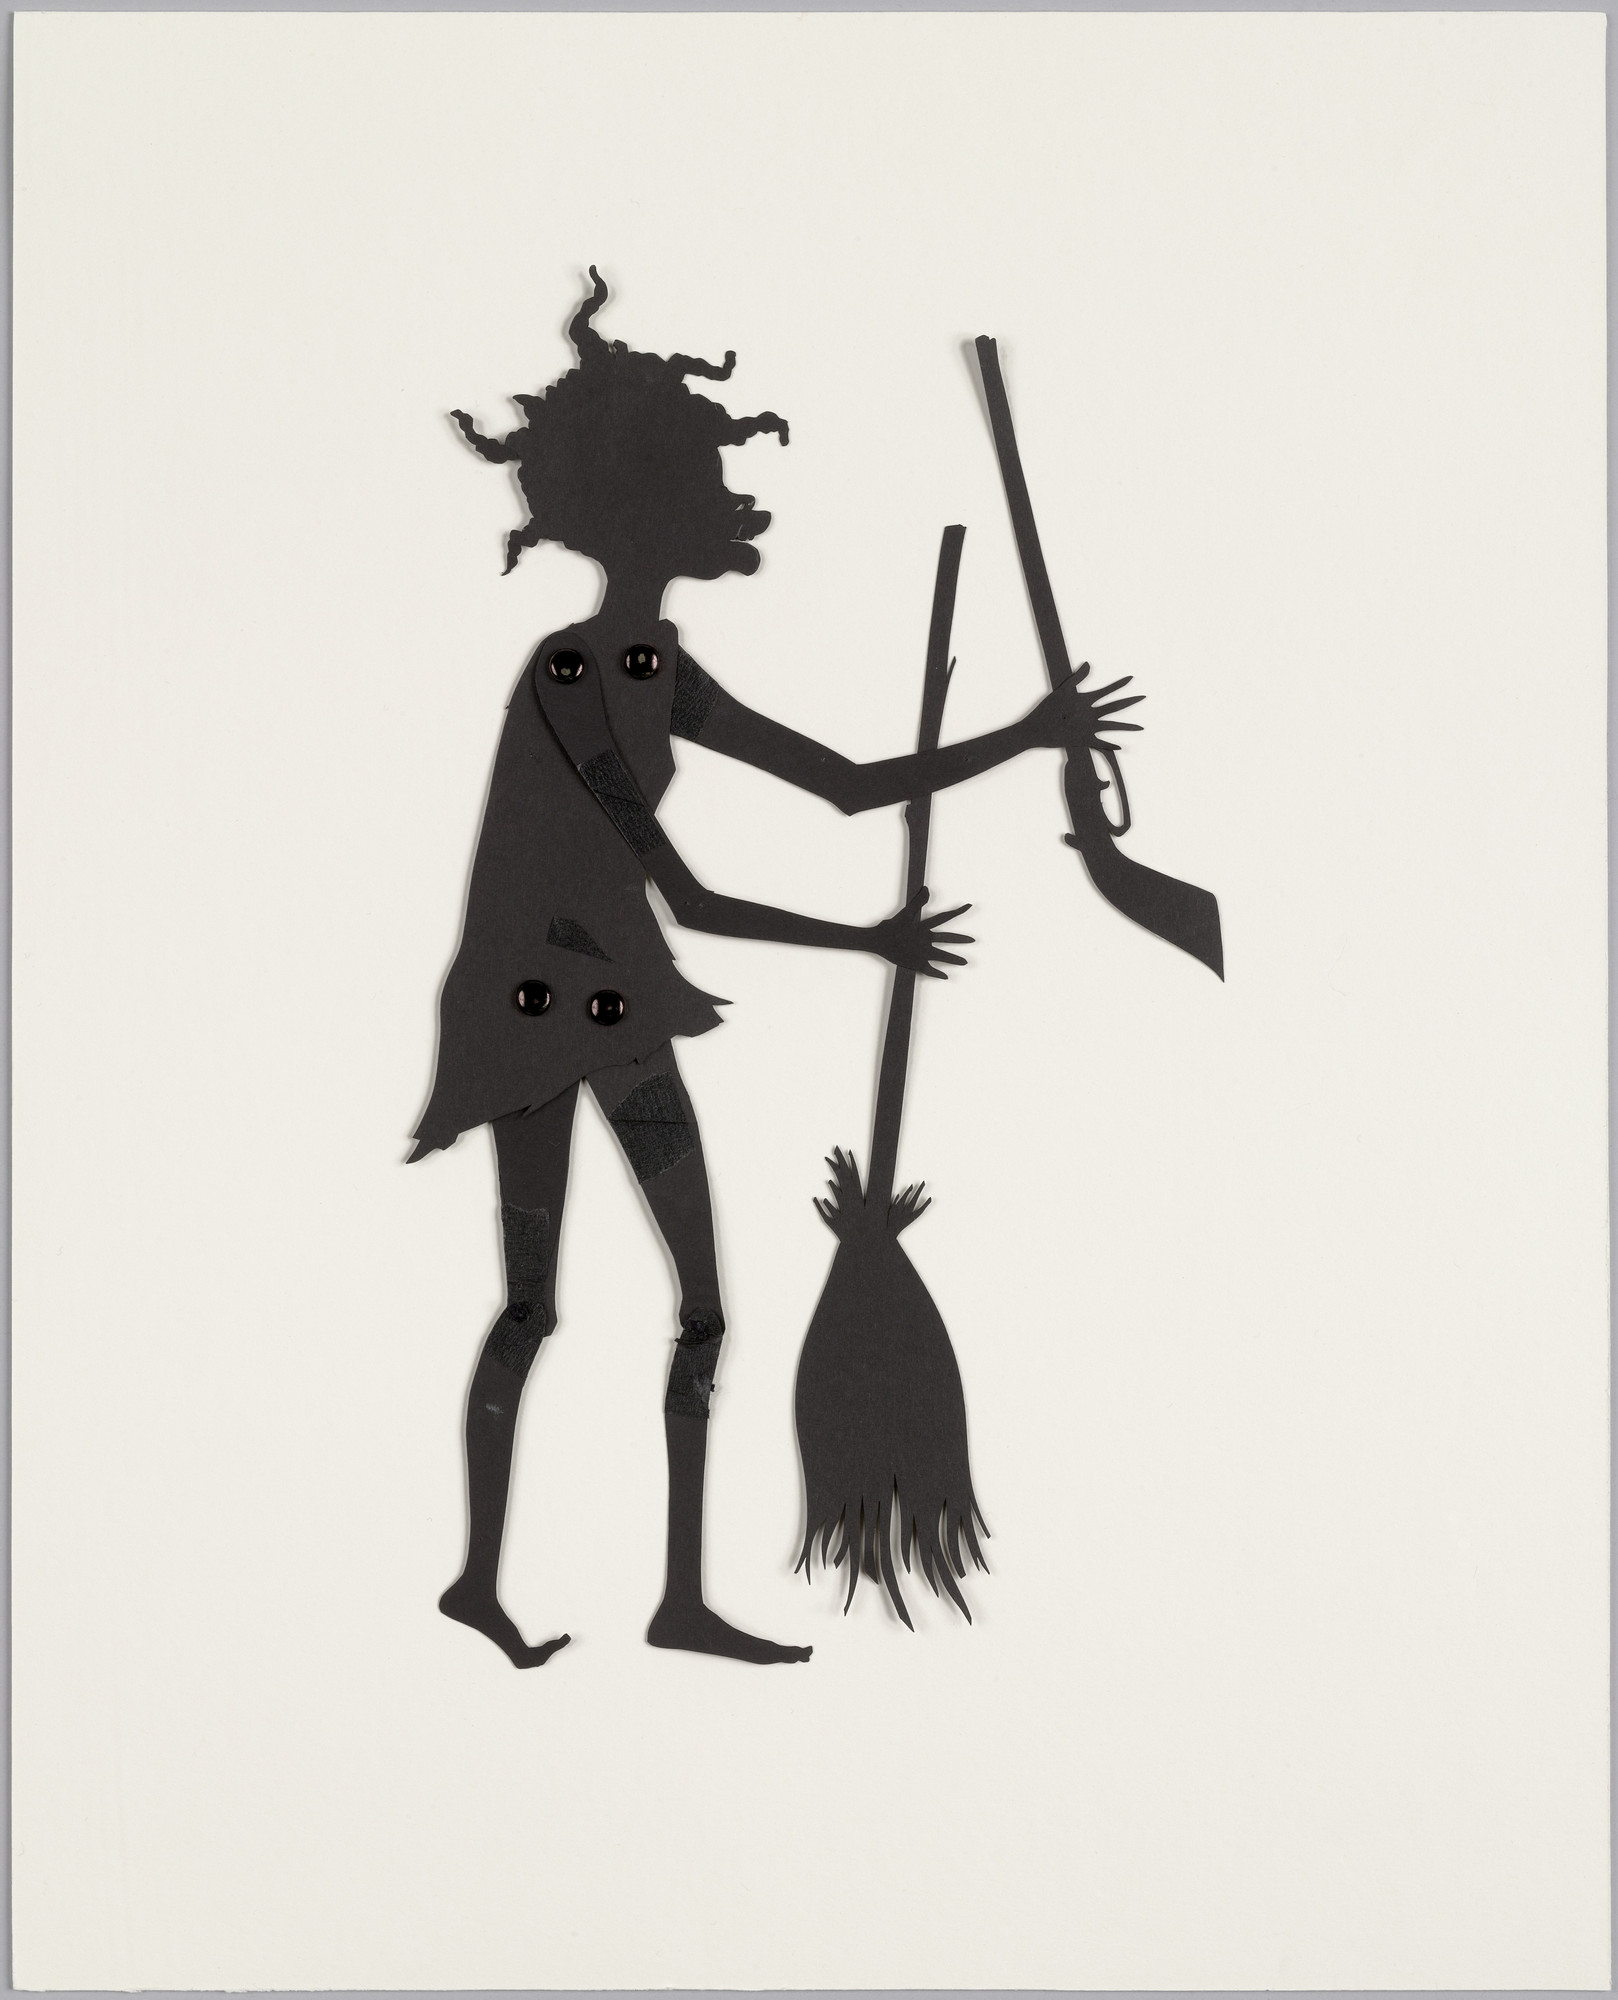 Kara Walker. Rebel Leader. Shadow puppet from Testimony: Narrative of a Negress Burdened by Good Intentions. 2004